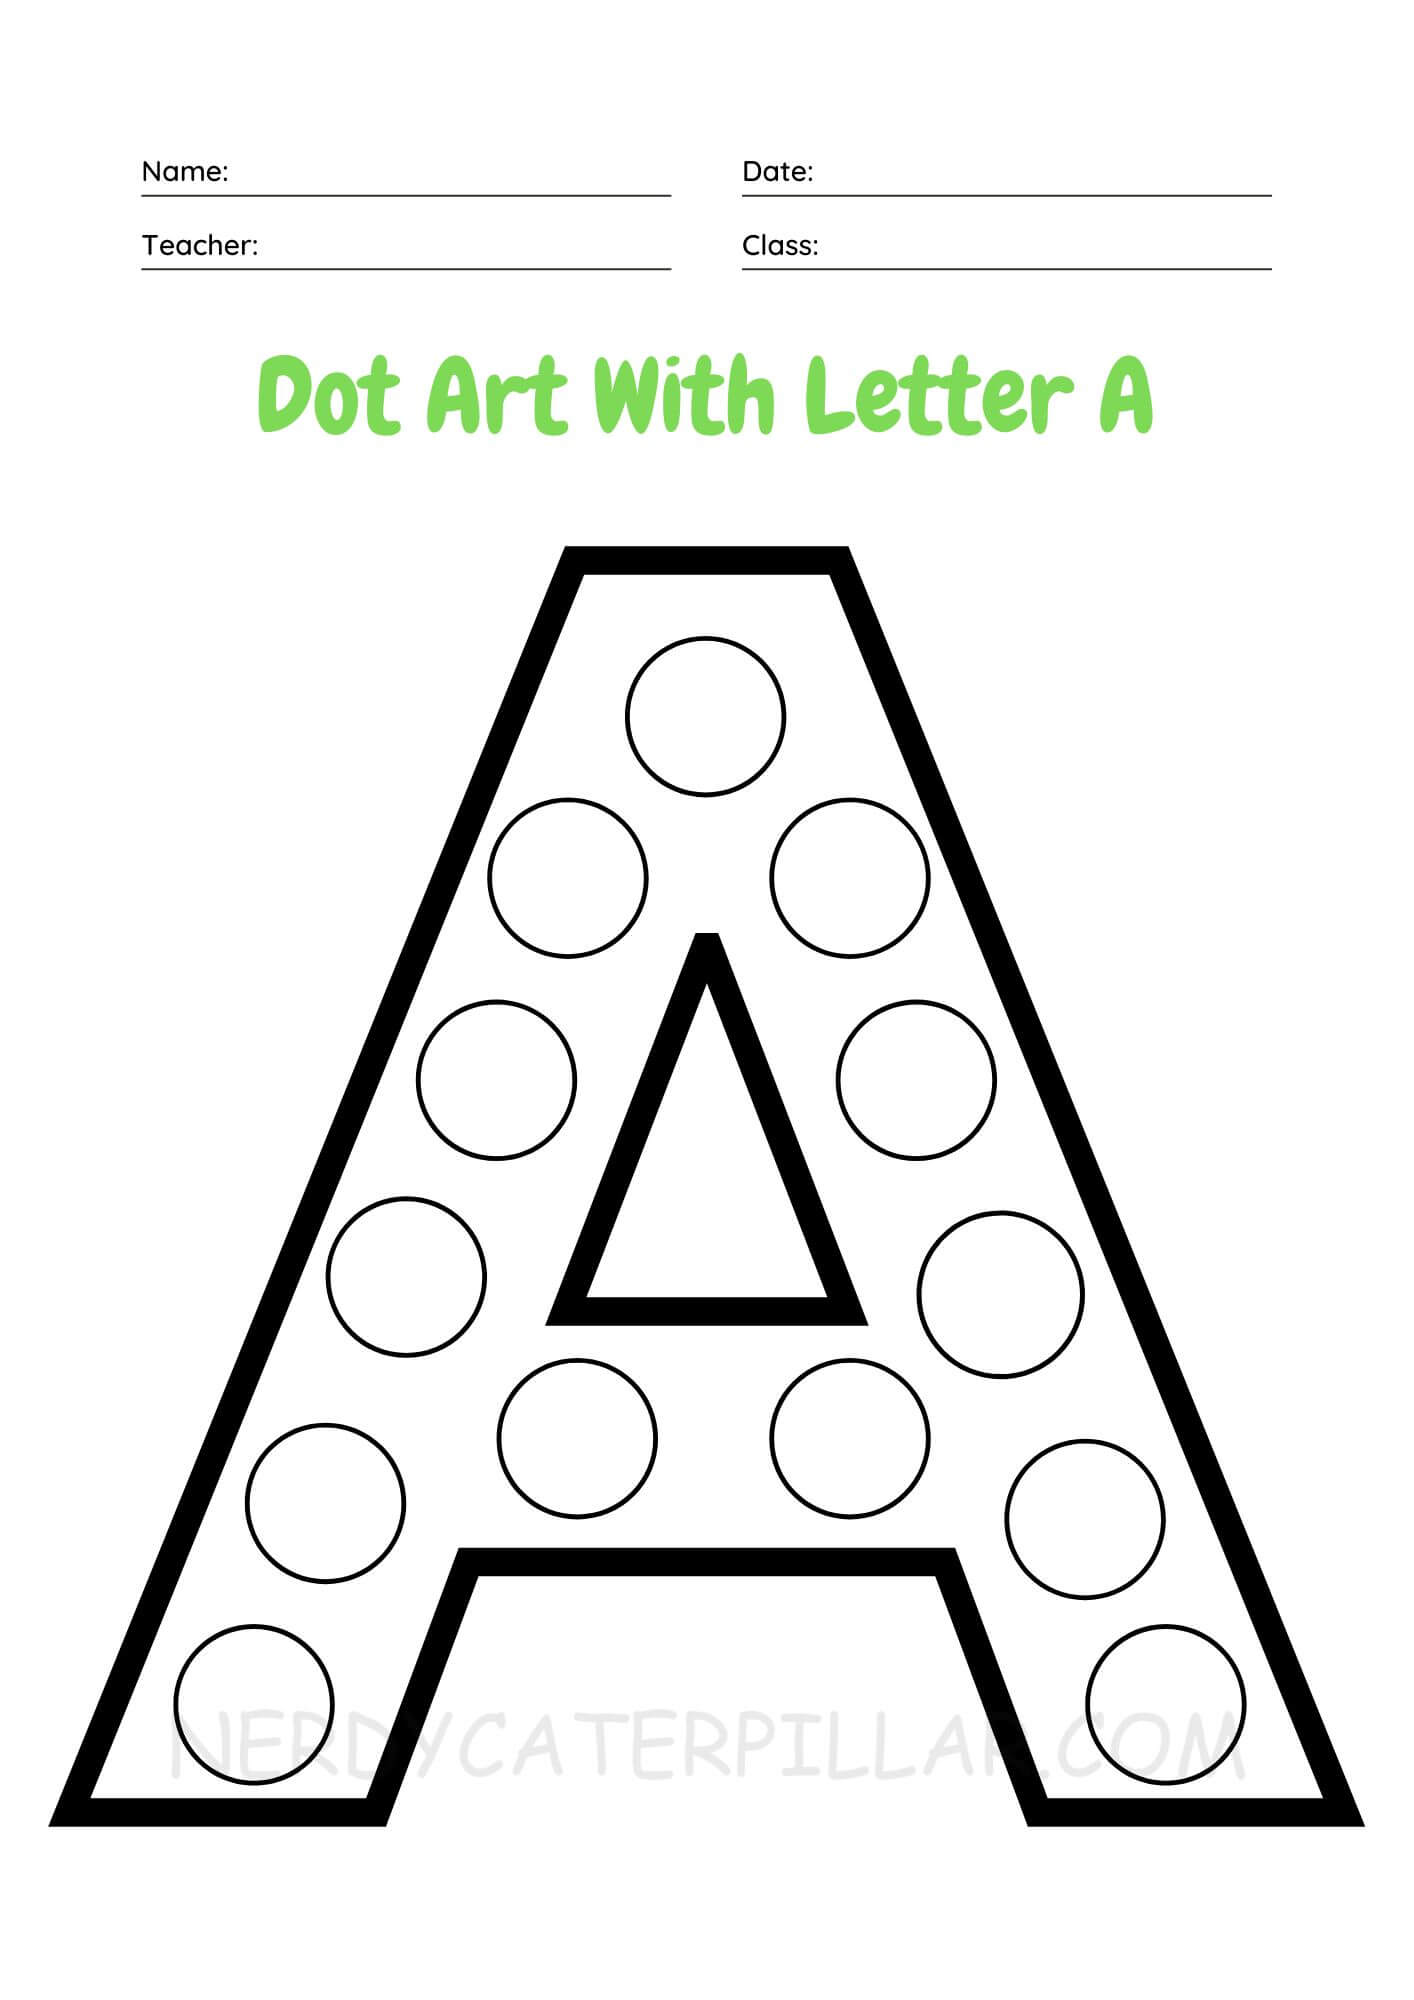 Dot Art With Letter A